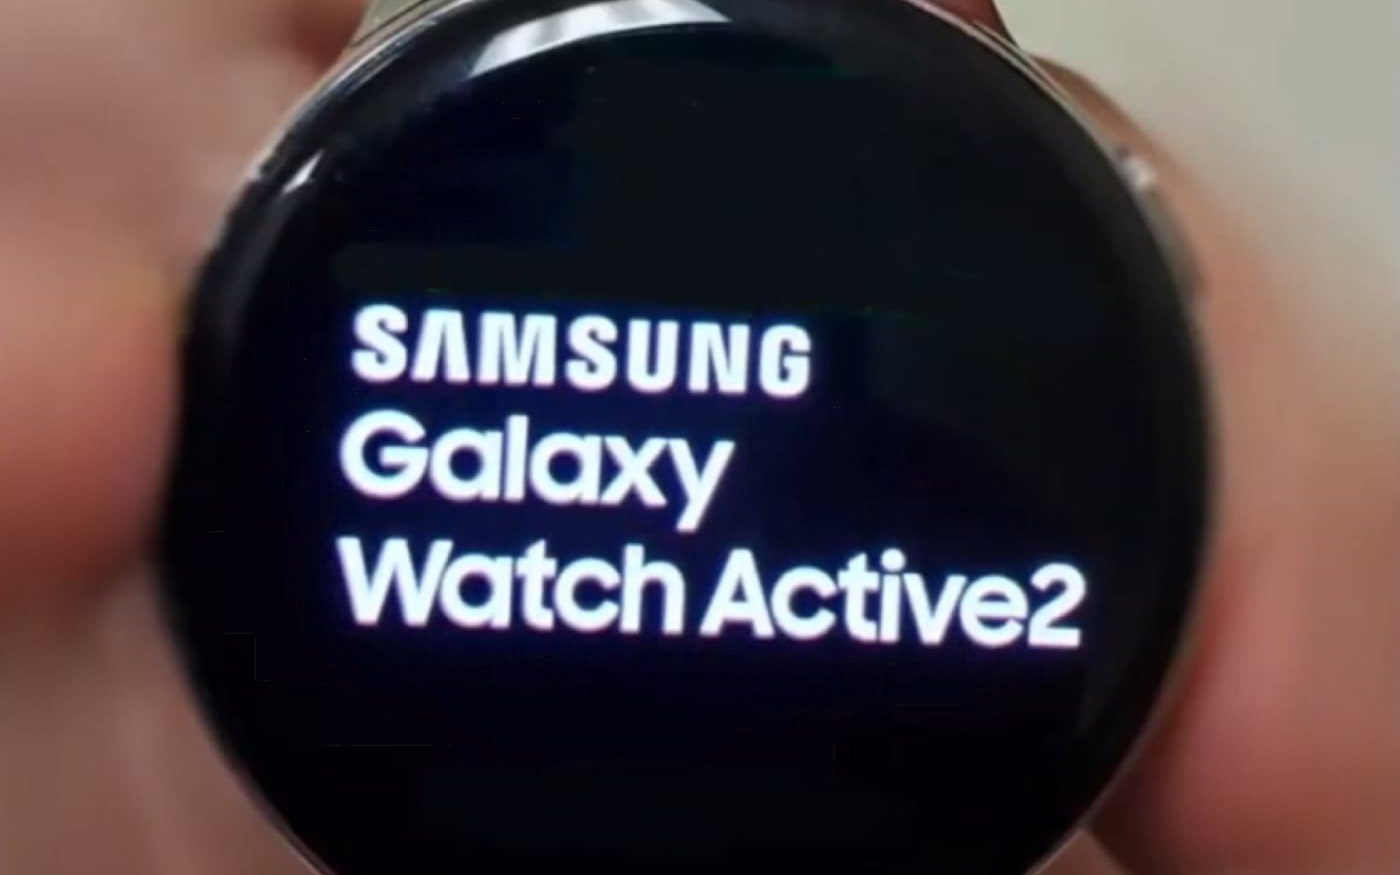 Samsung Galaxy Watch Active 2 apareceu